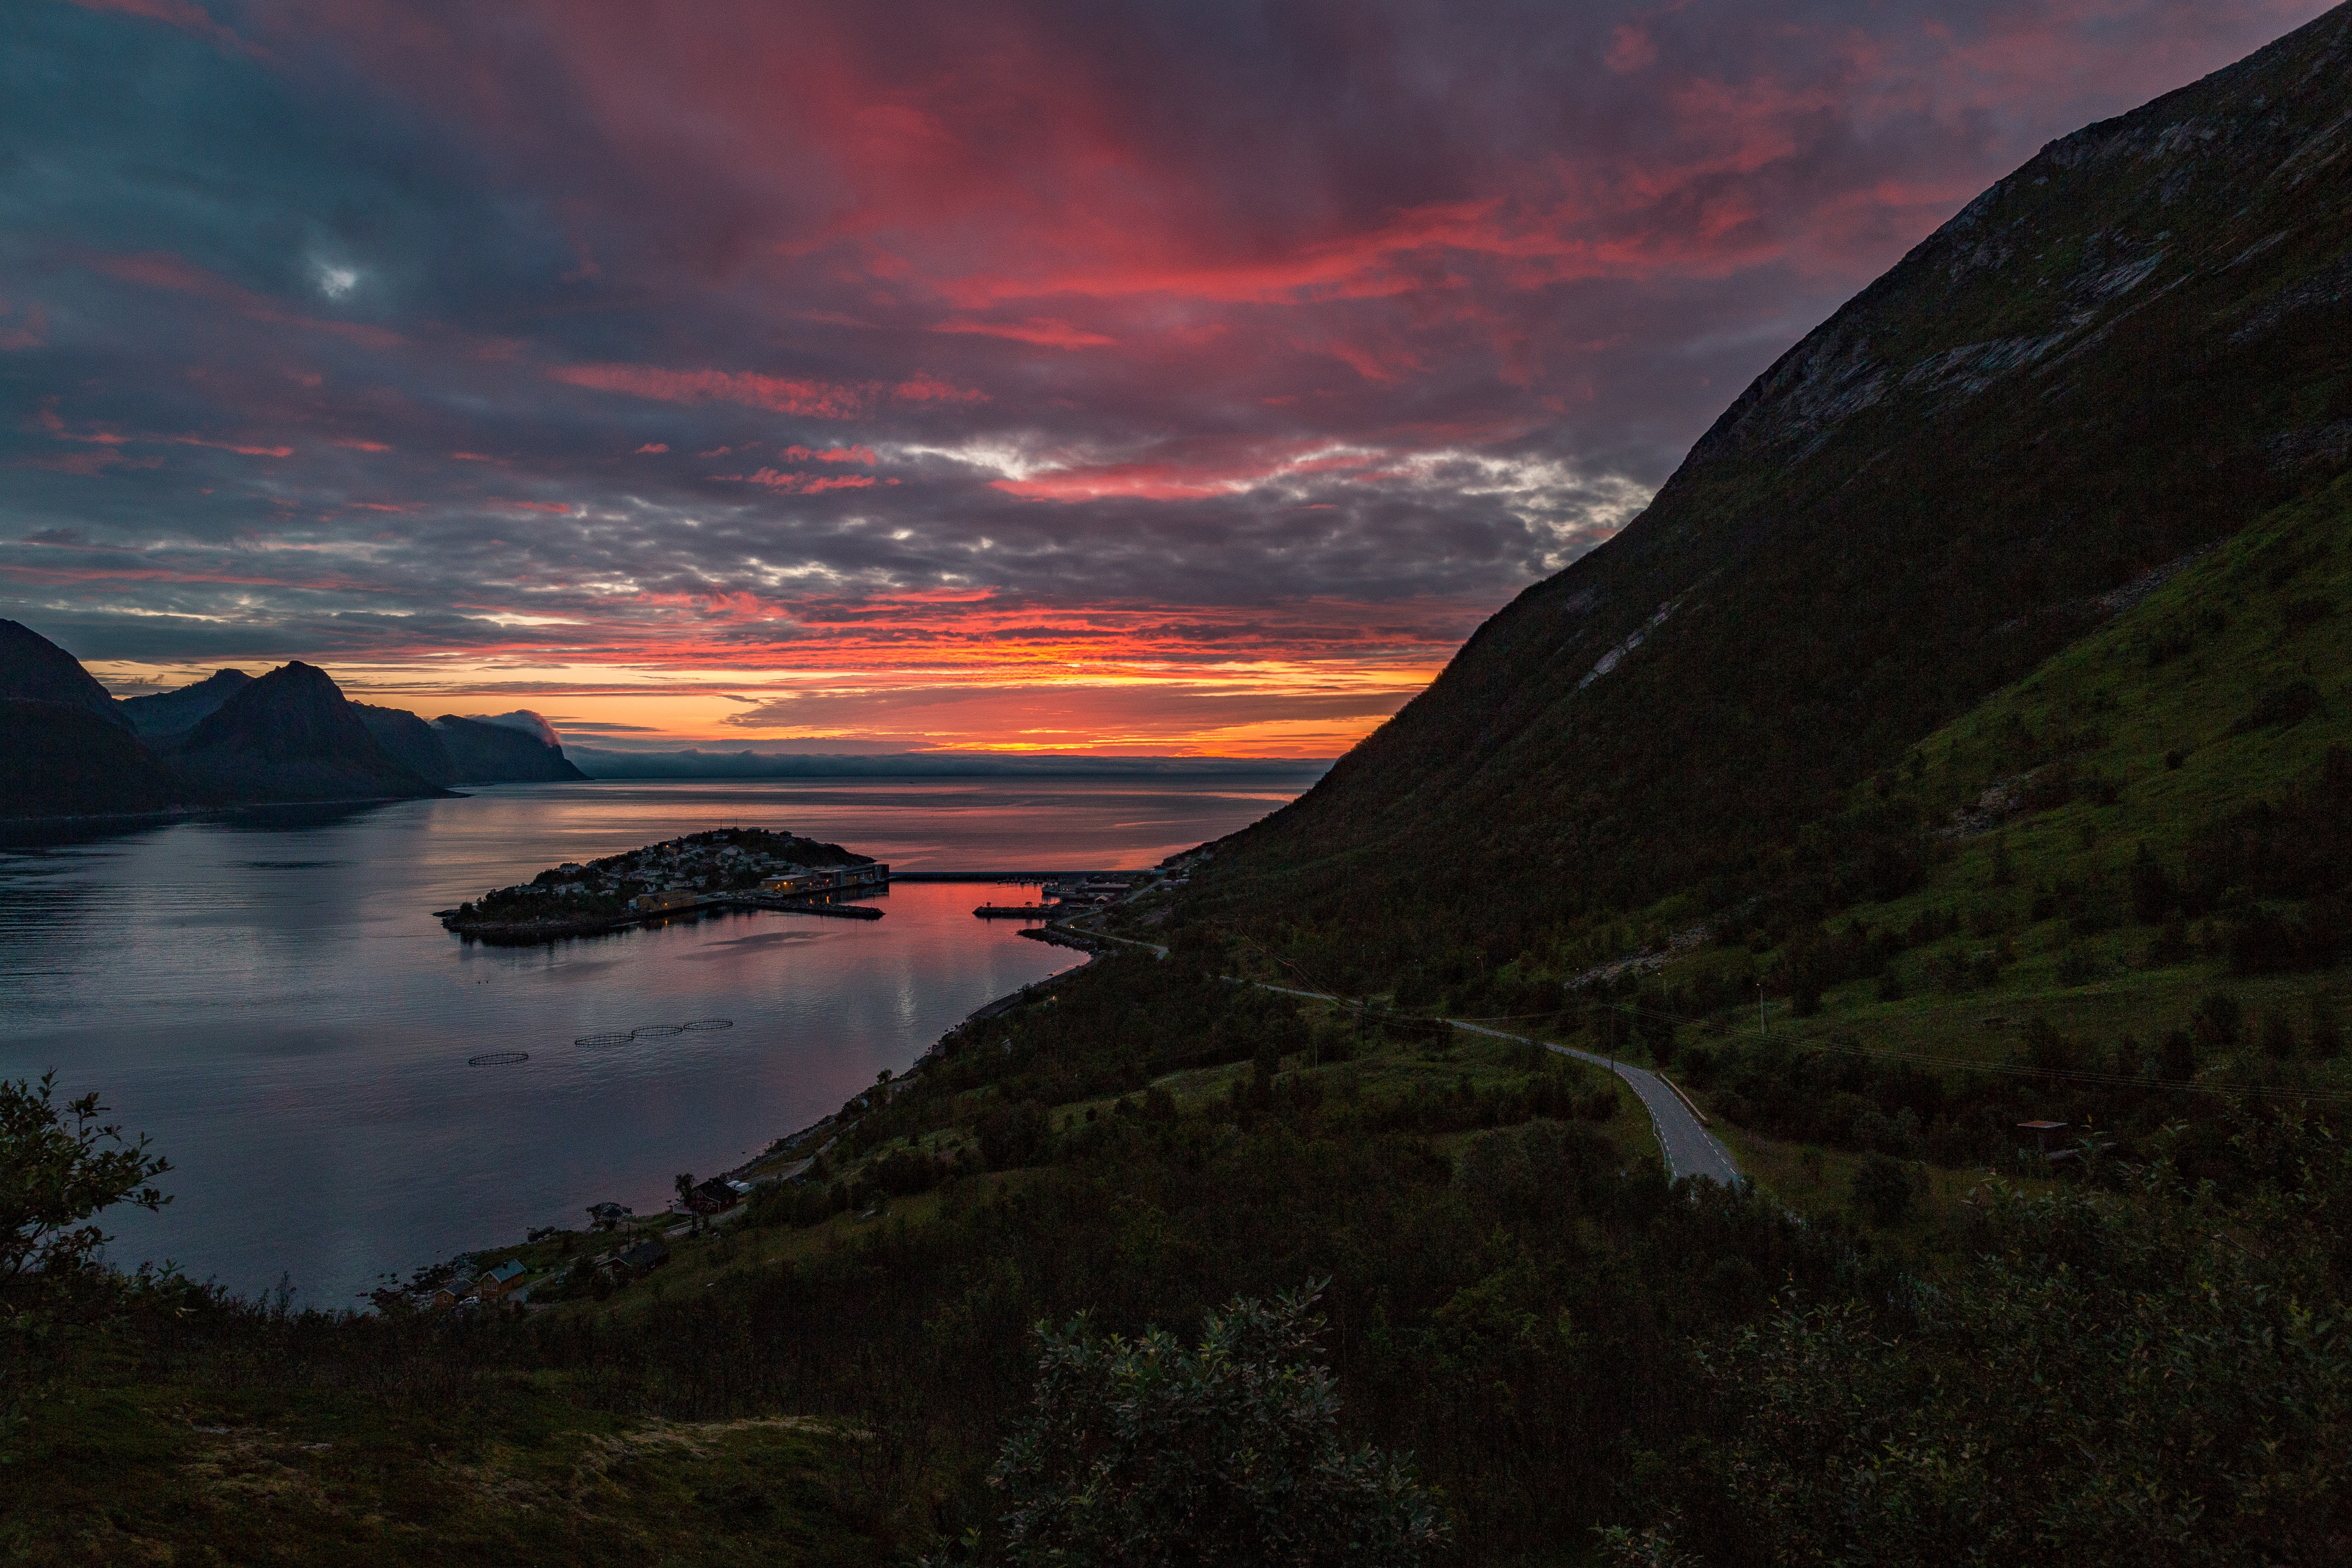 Dusk with clouds and fjord landscape in Norway image - Free stock ...